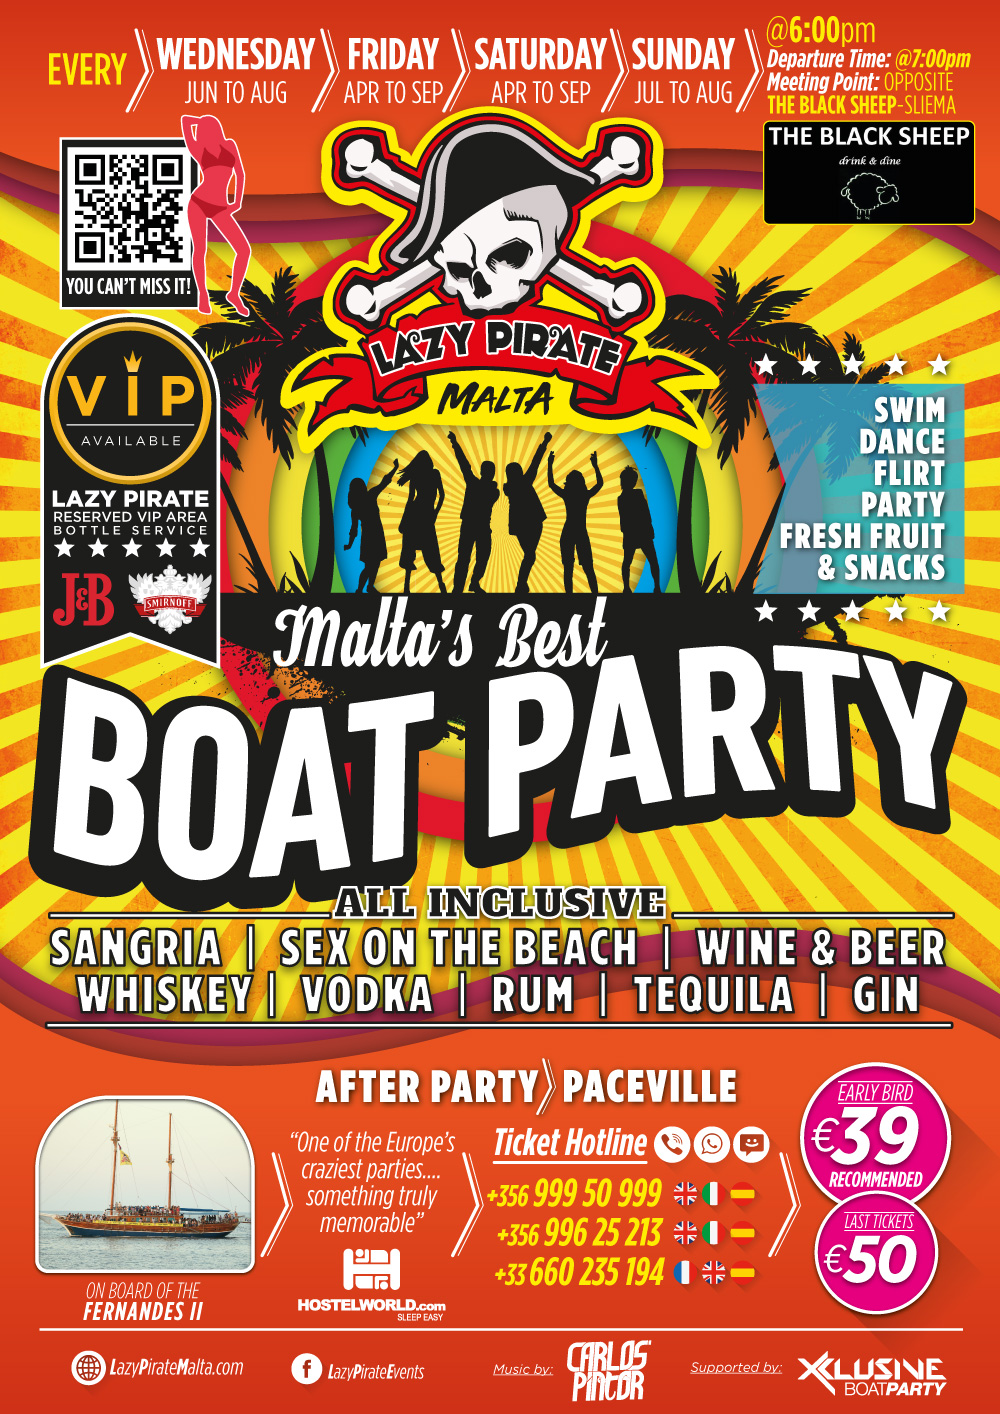 Lazy Pirate Boat Party Malta 2019 flyer